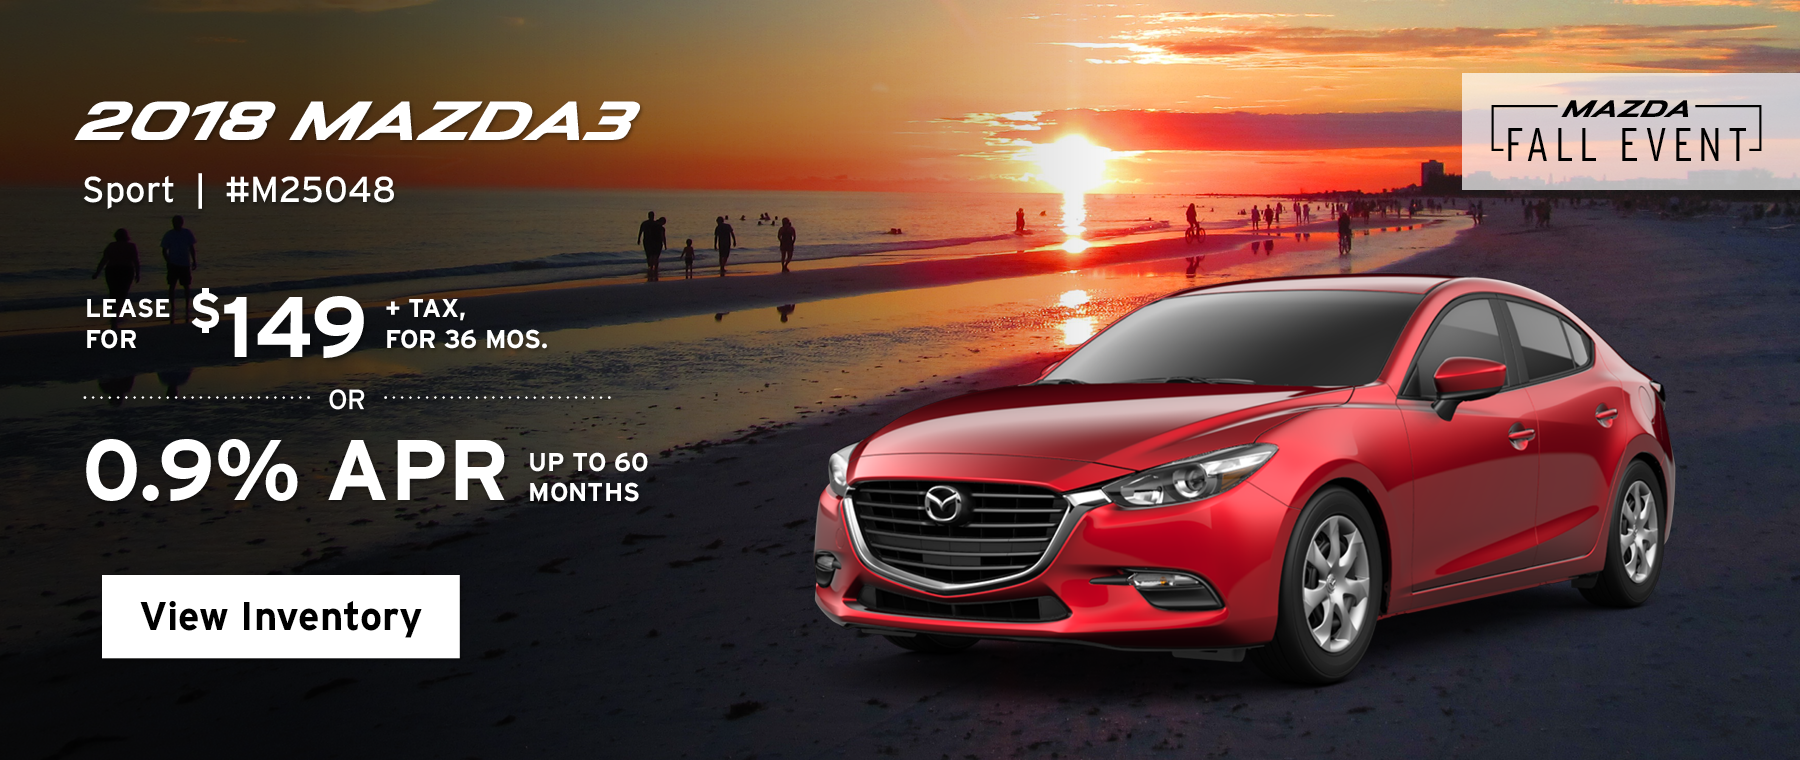 Lease the 2018 Mazda3 Sport for $149, plus tax for 36 months, or 0.9% APR up to 60 months.